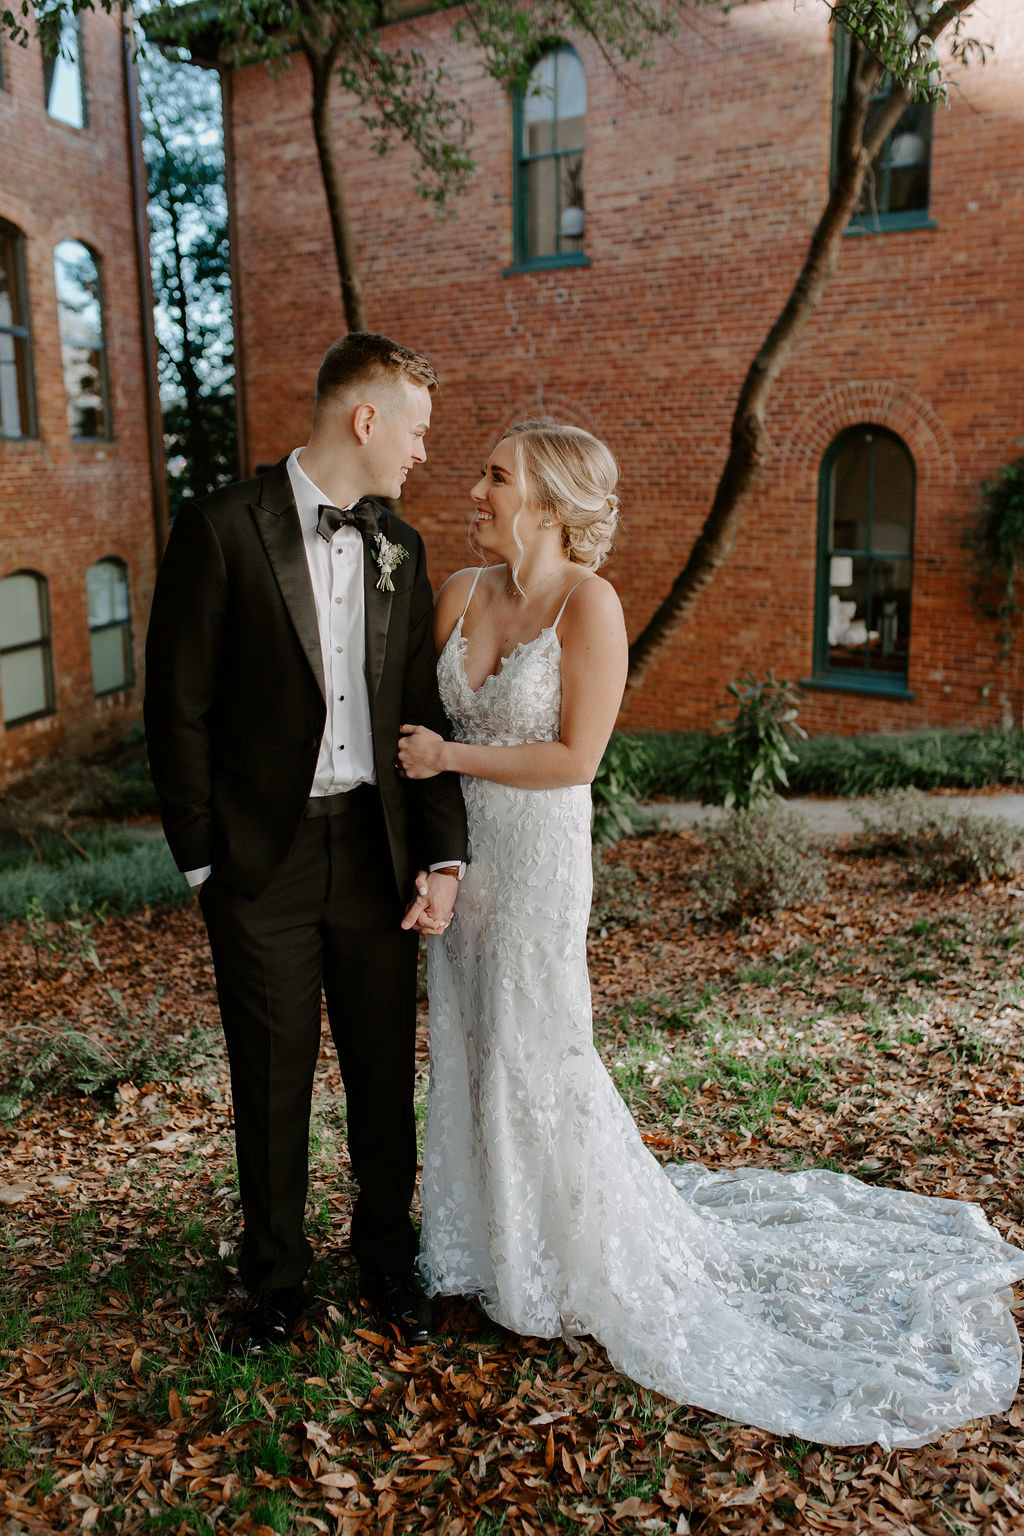 clink-events-greenville-wedding-planner-24